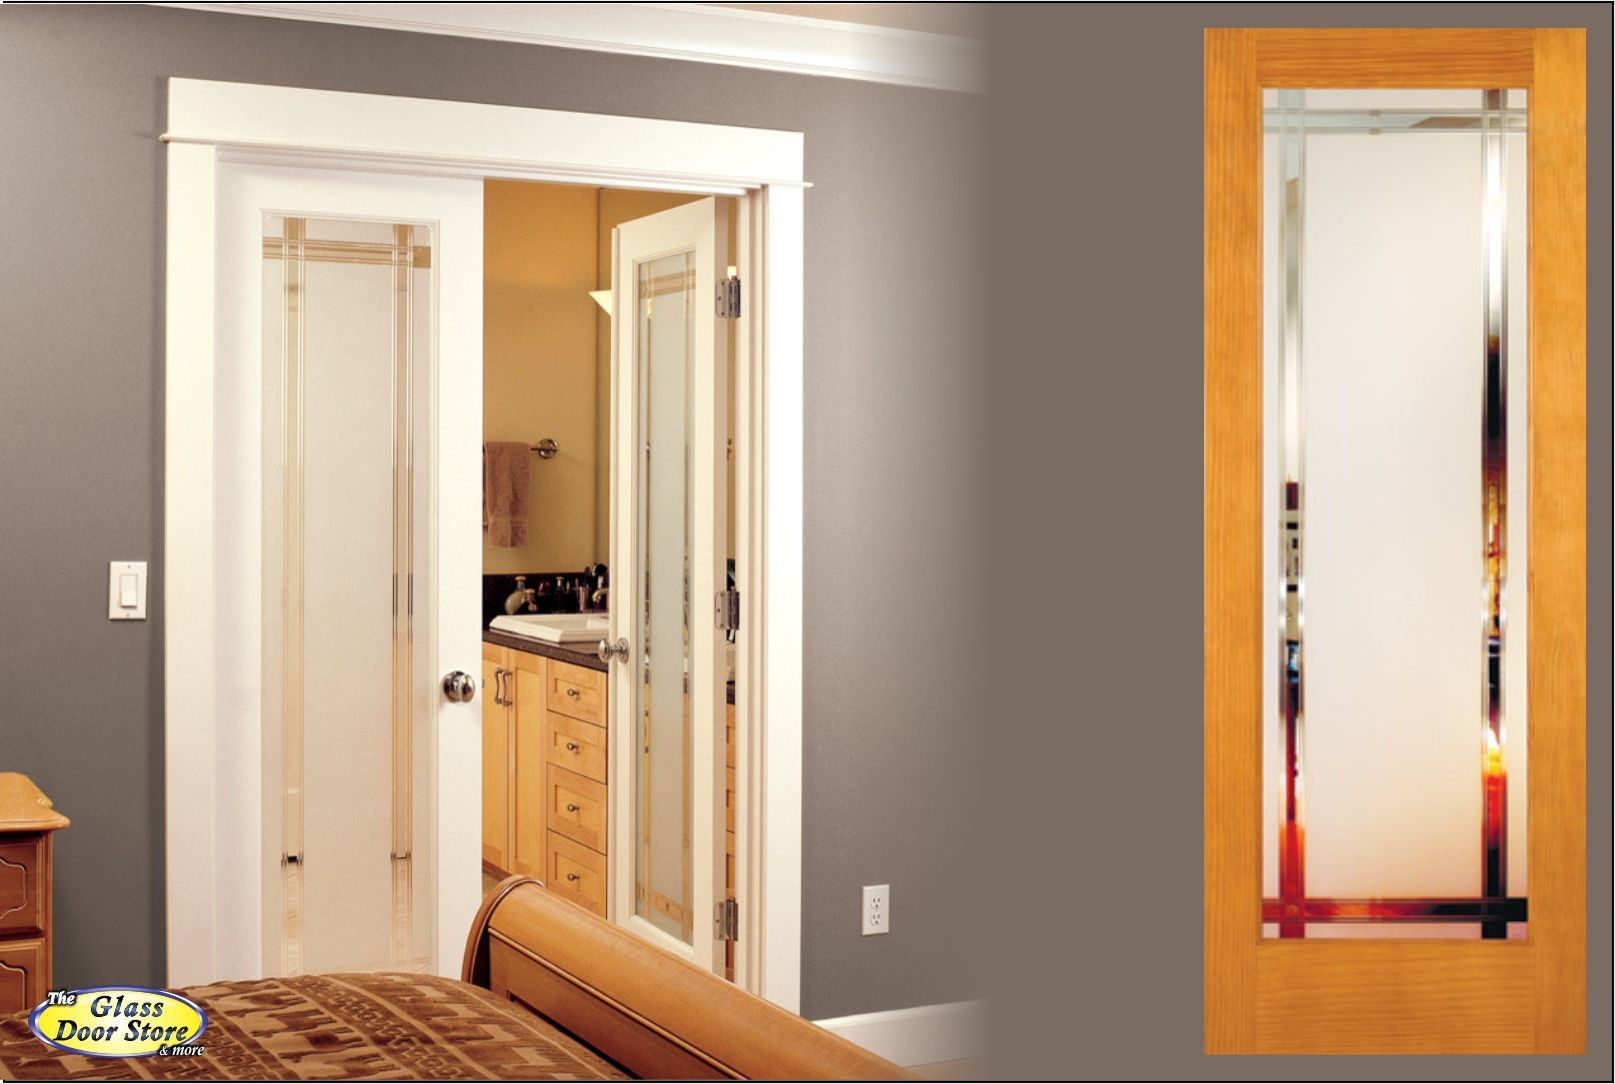 Delightful Interior Doors With Glass For Your Home Office, Pantry, Clear Glass With  Etched Design, Or Barn Doors With Decorative Glass Clear Or Textured Custom  Order ...